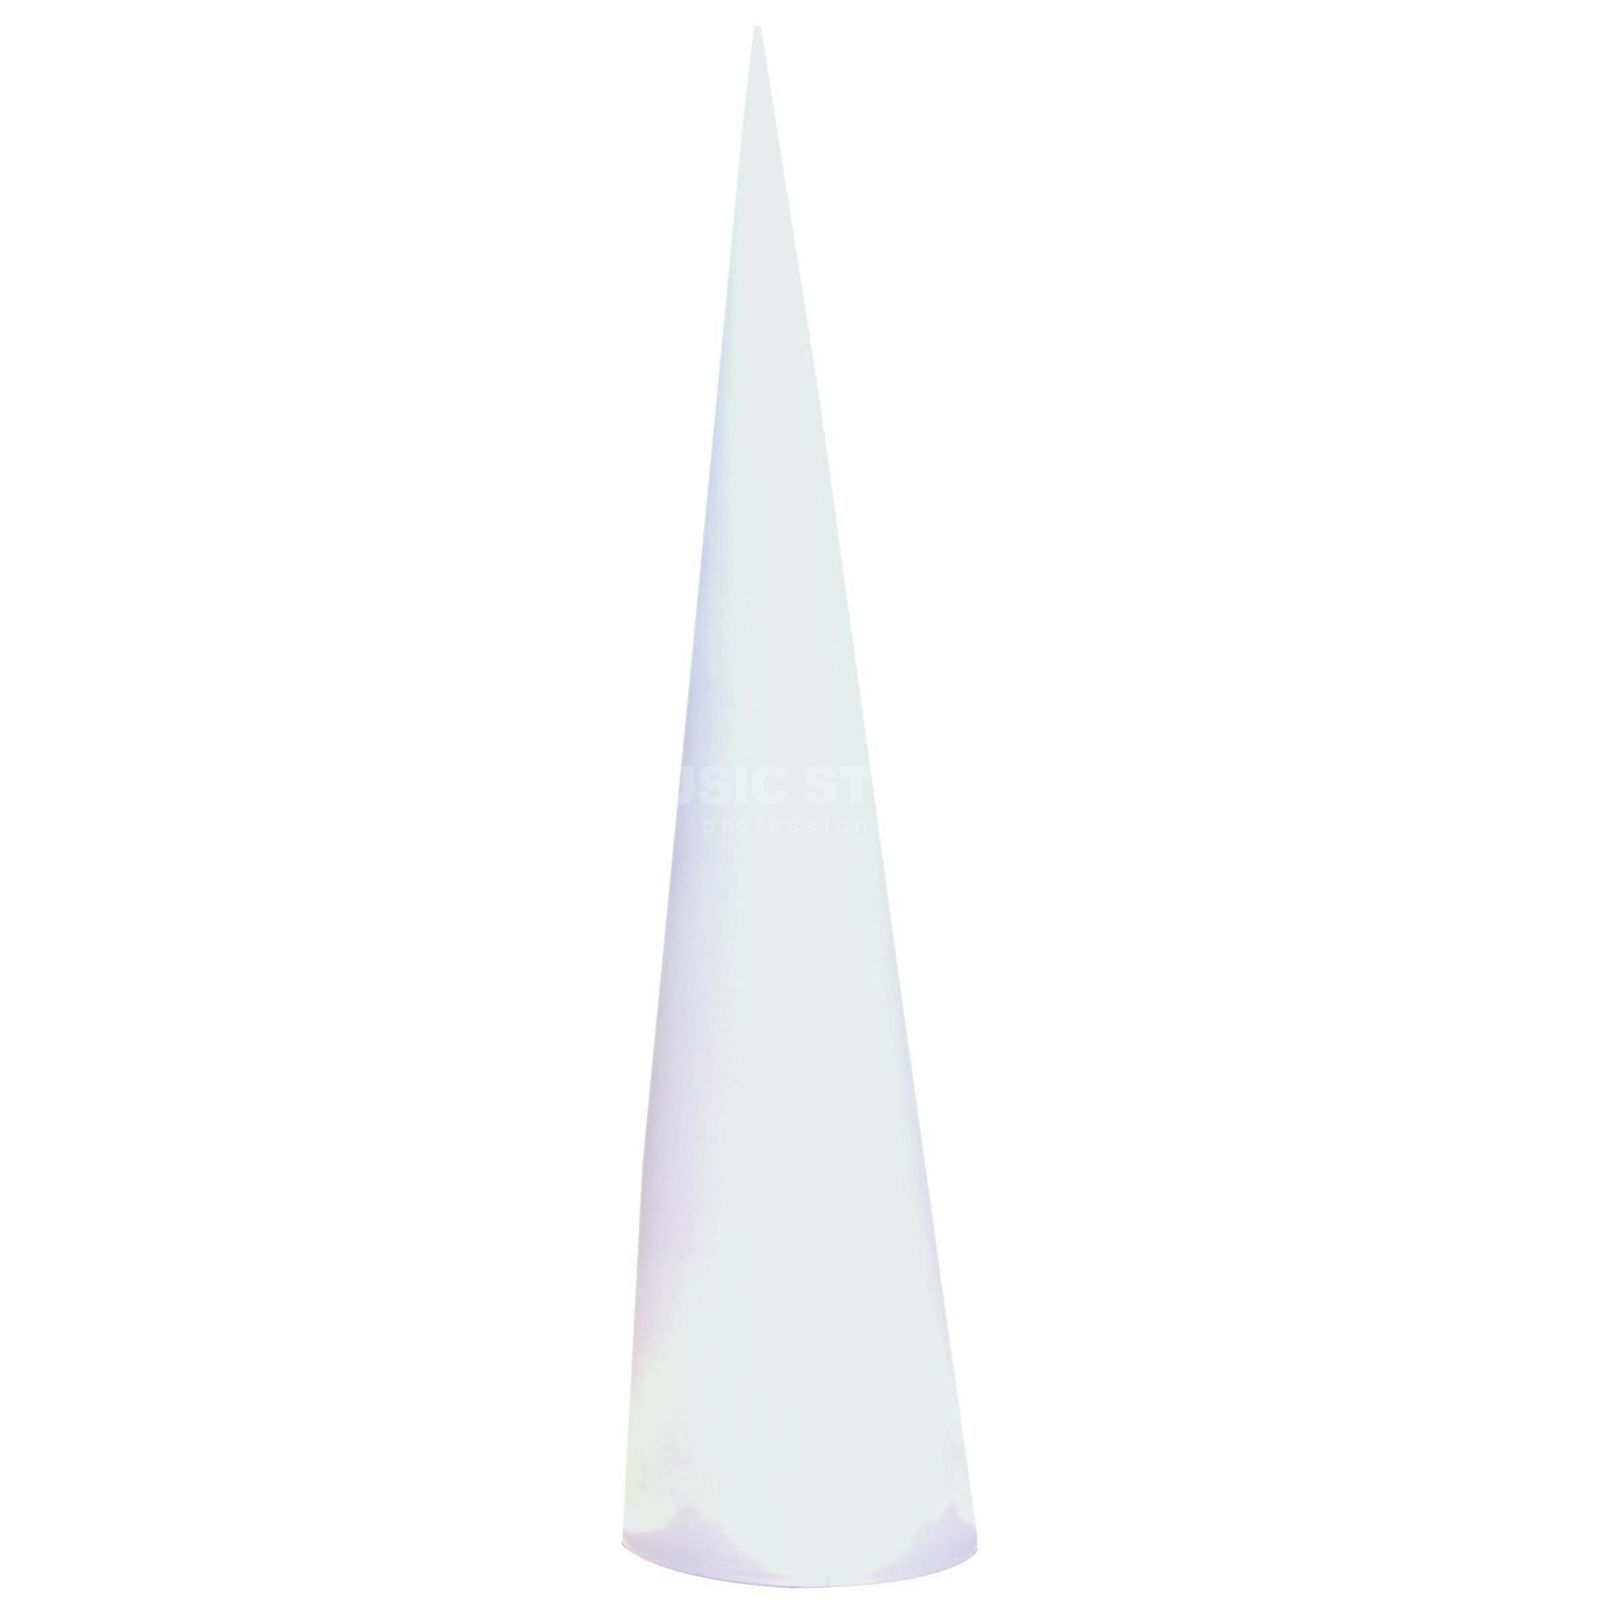 Eurolite Replacement Cone 2m for AC-300 white Produktbillede